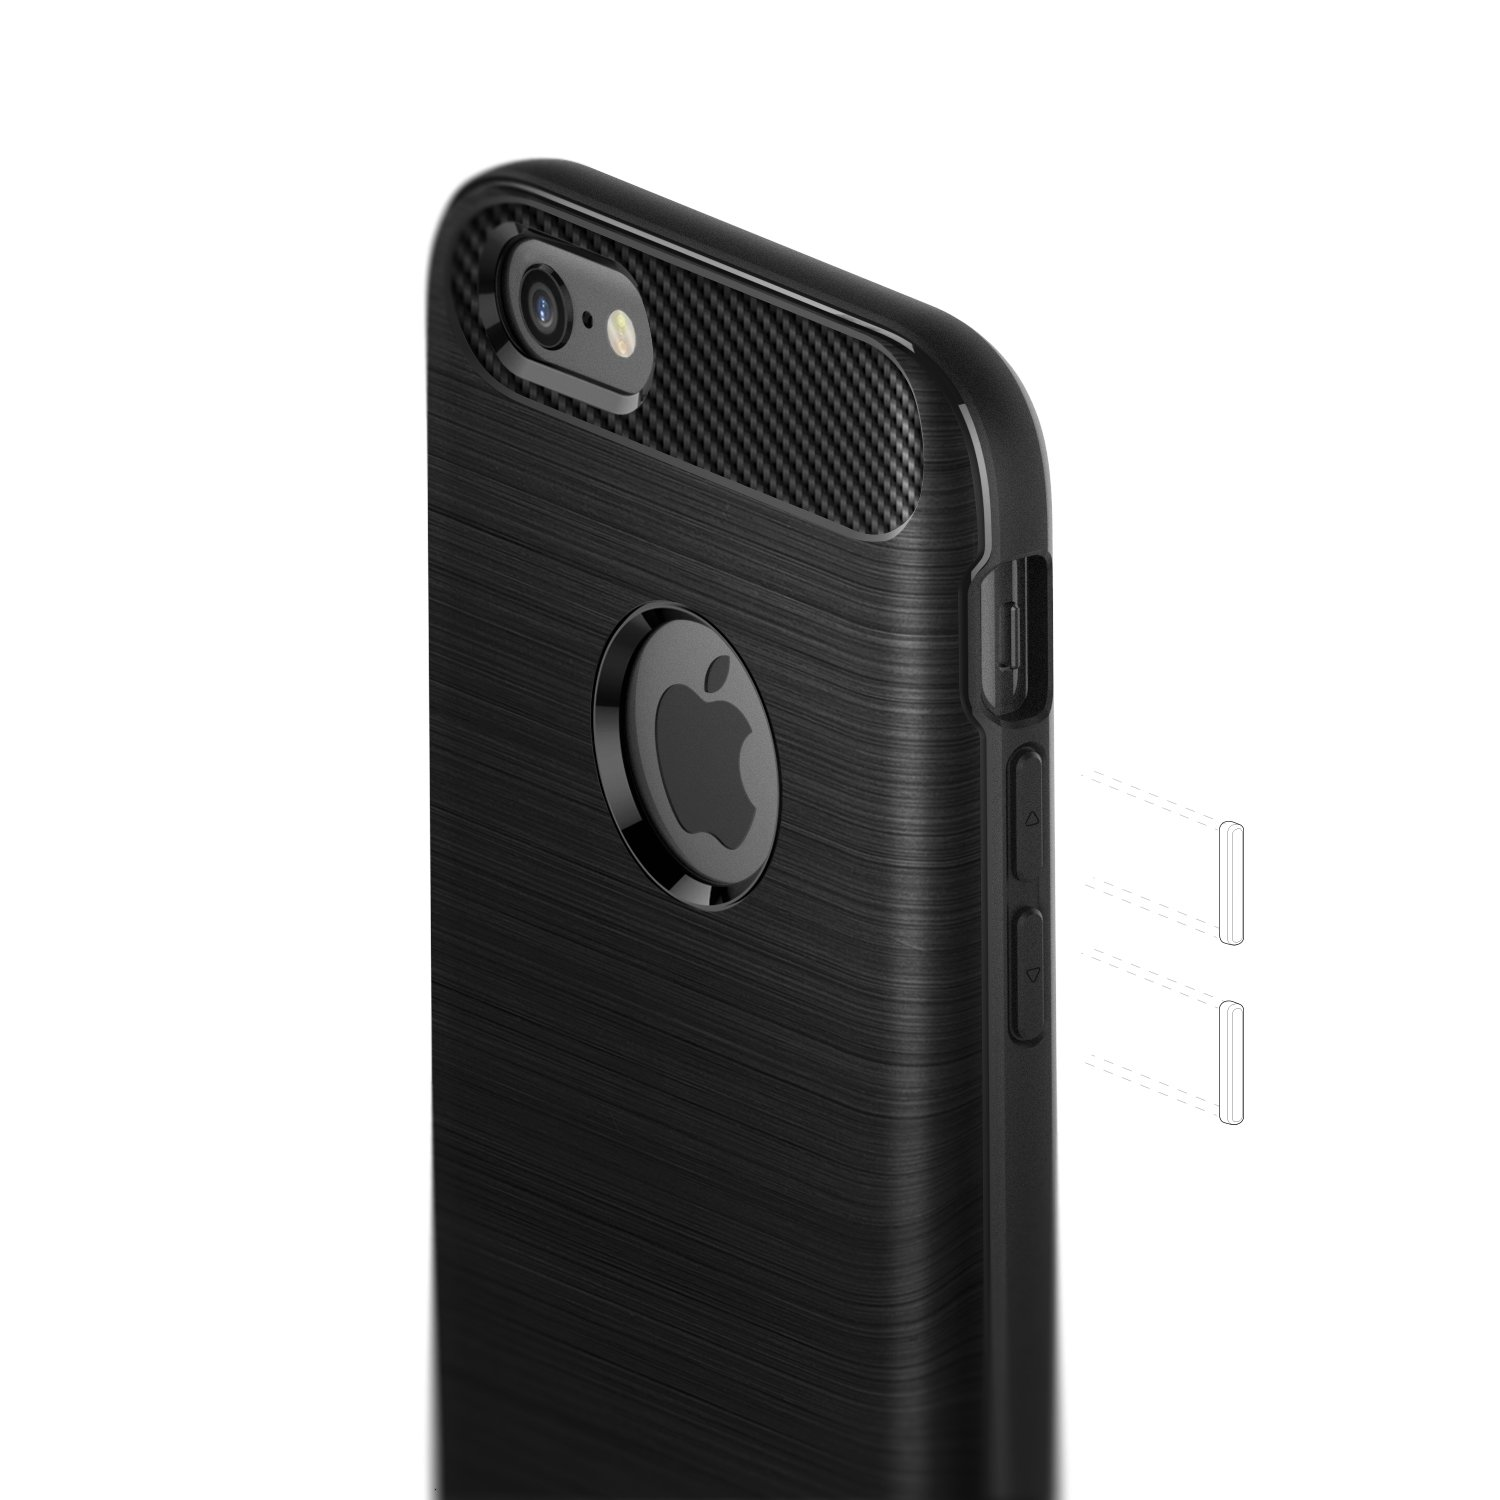 Caseology Vault for iPhone 6S Case (2015)   iPhone 6 Case (2014) - Rugged  Matte Finish - Black  Amazon.ca  Cell Phones   Accessories 49477f414f32d